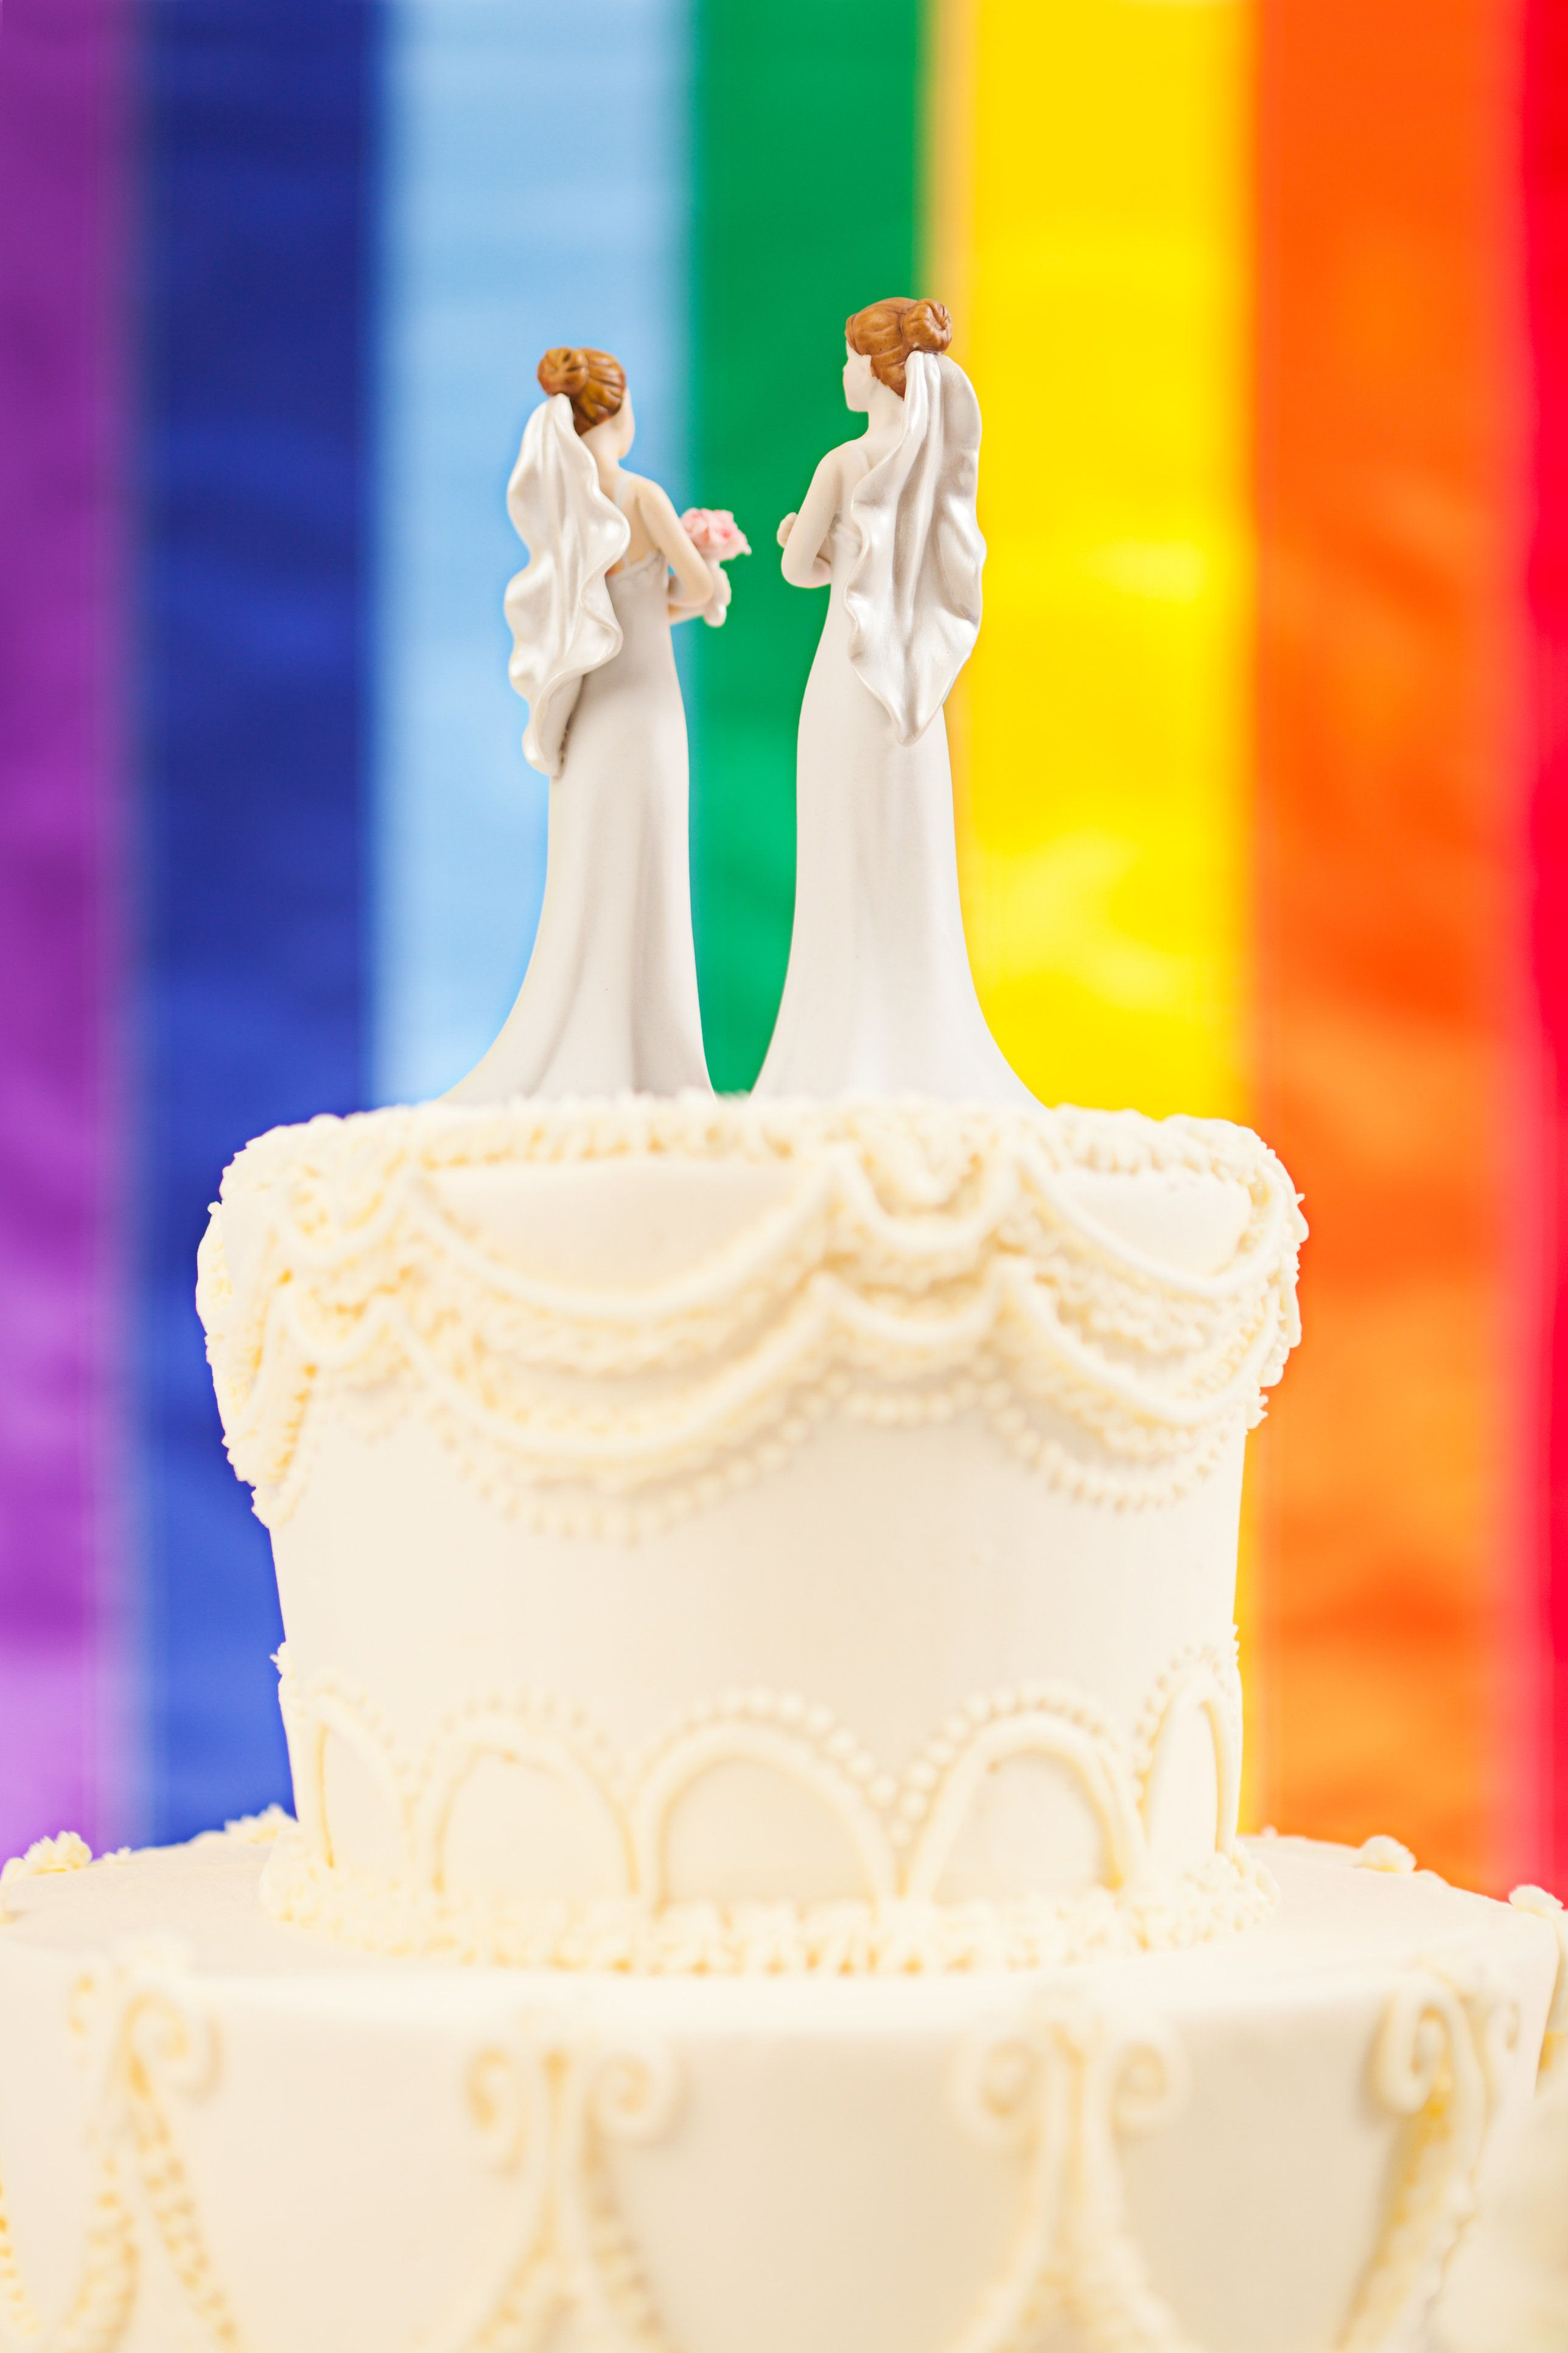 Subject: Same sex marriage wedding cake with two female bride figurine cake toppers and rainbow flag in background.